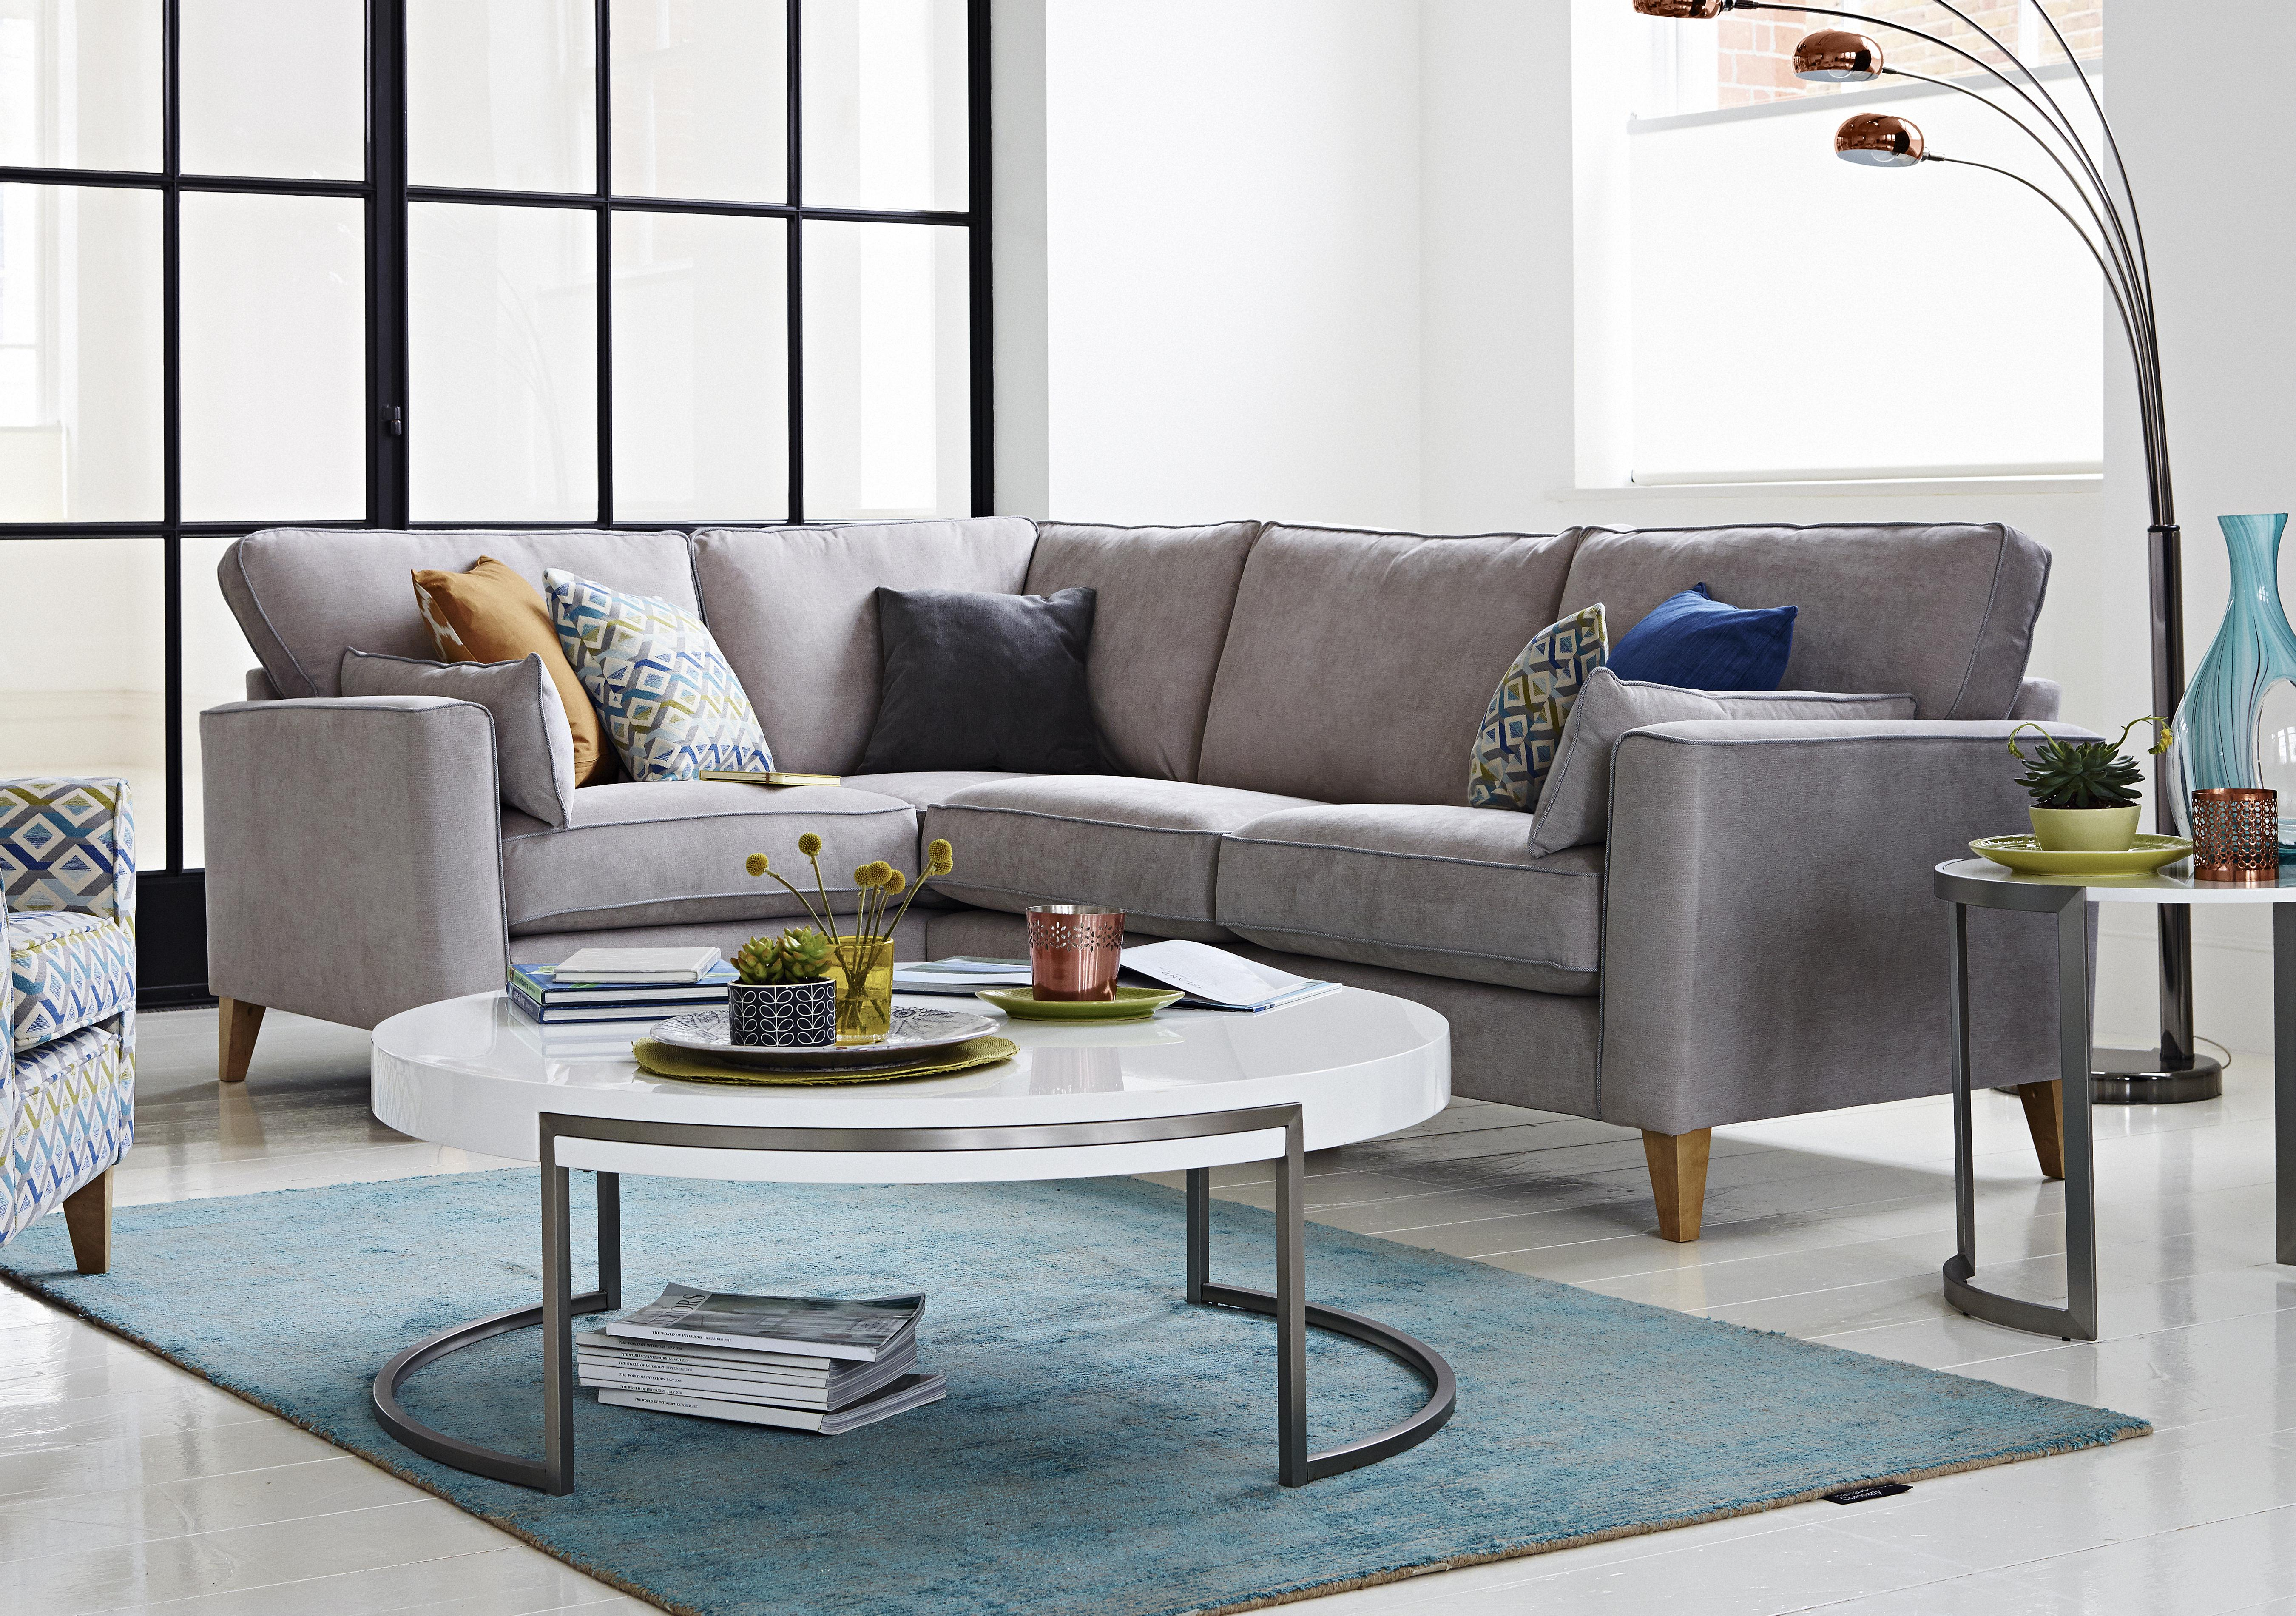 Simple Furniture Village Interest Unit Acacia Intended Inspiration